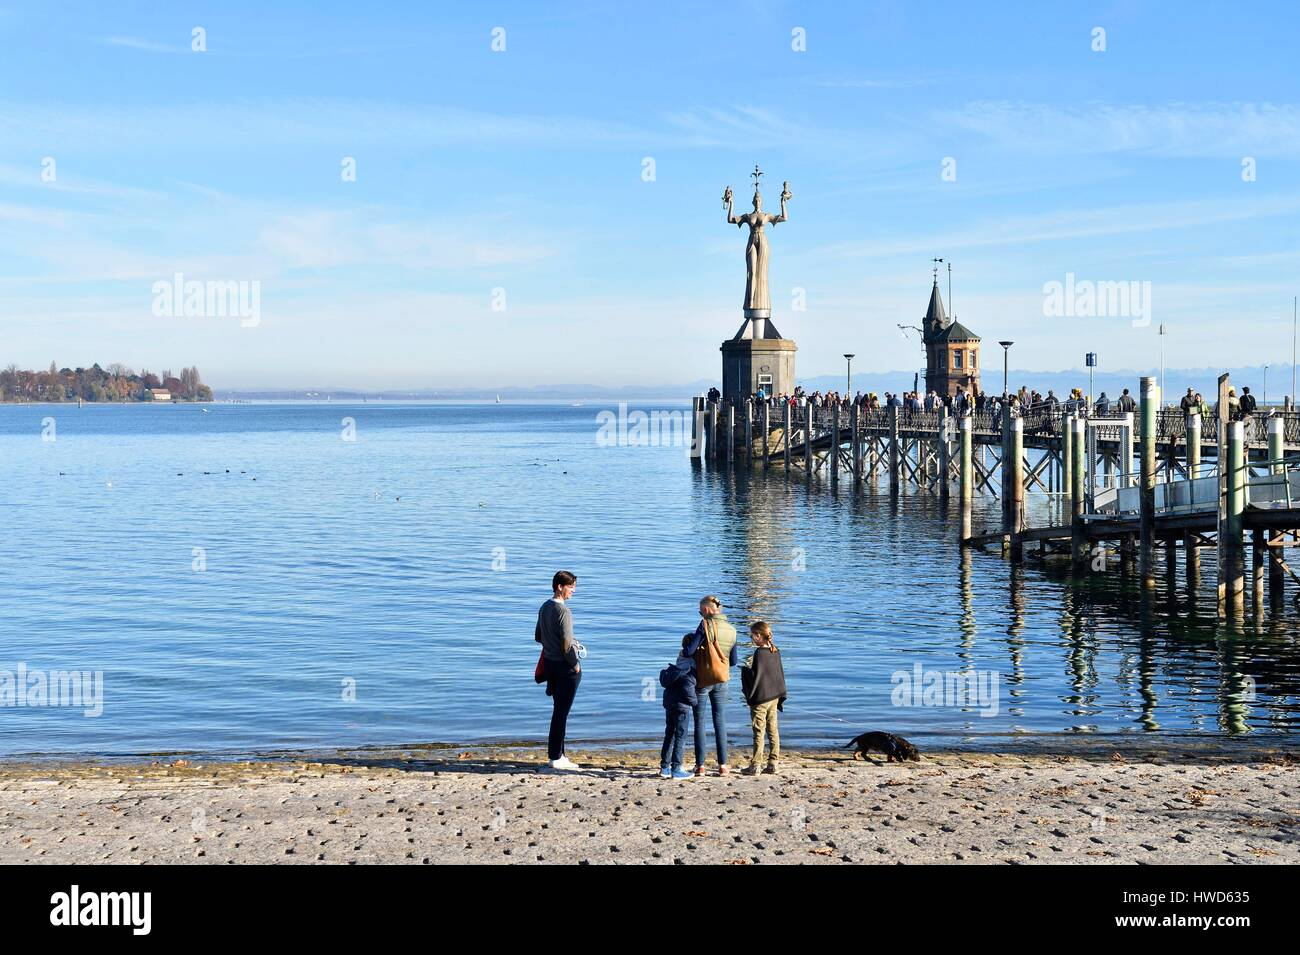 Germany Bade Wurtemberg Lake Constance Bodensee Konstanz The